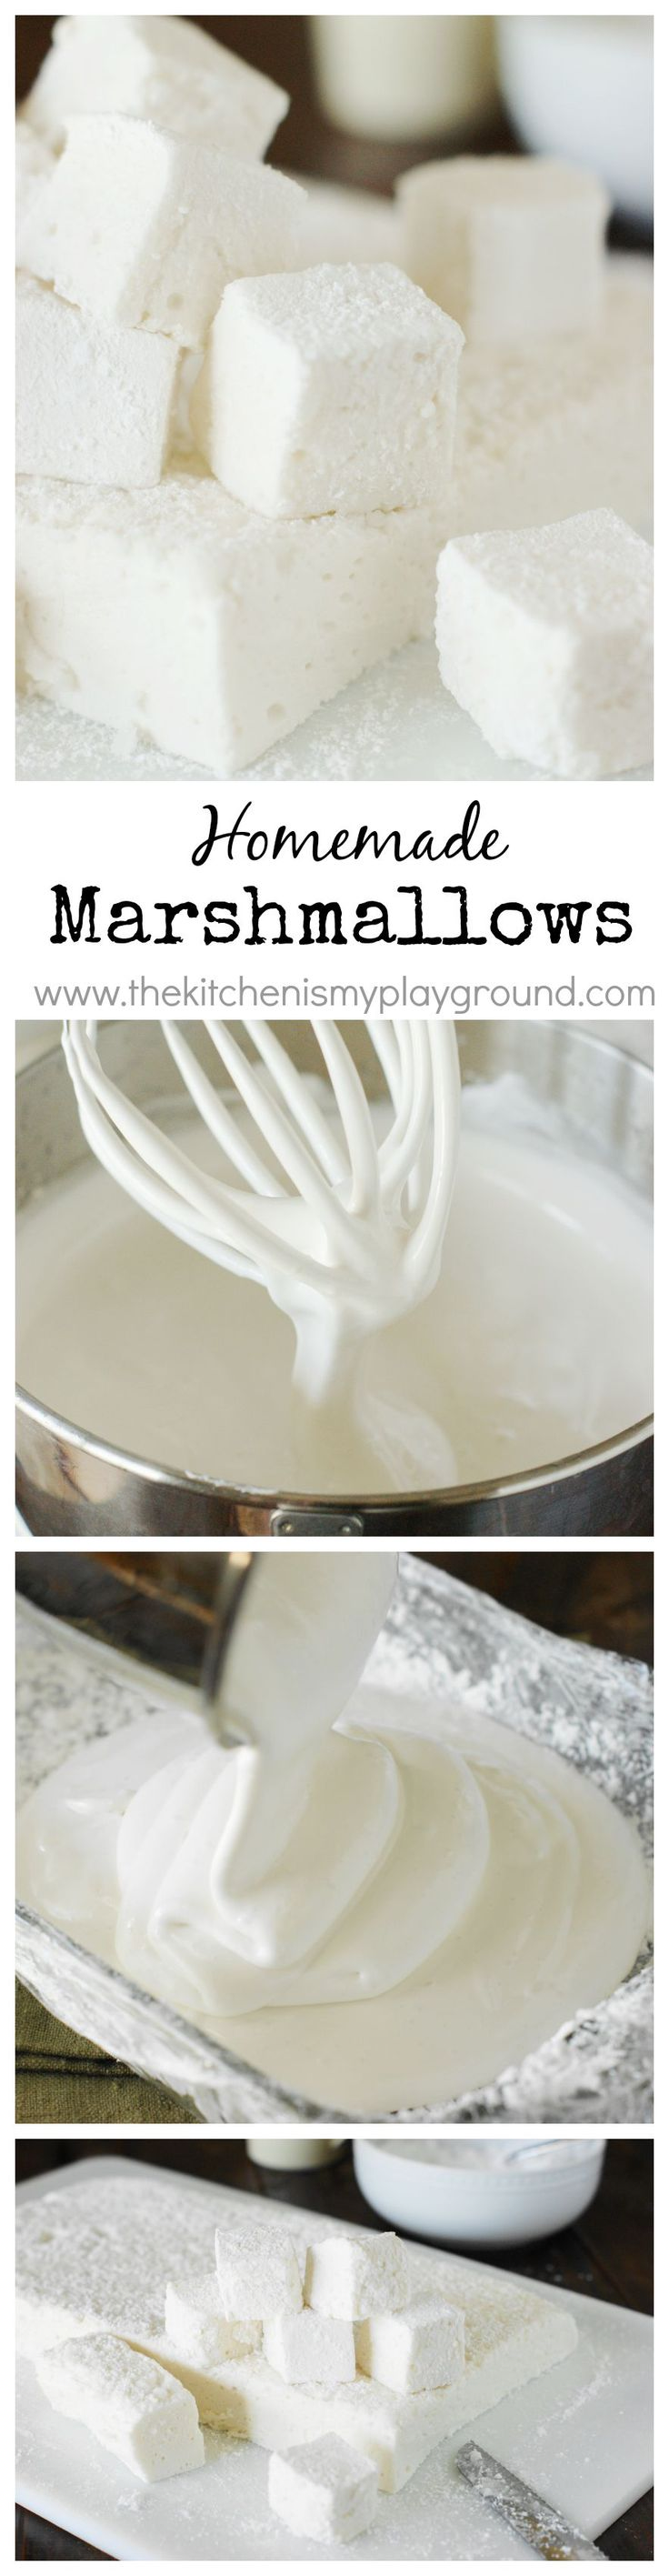 How to Make Homemade Marshmallows ~ they're TOTALLY worth the homemade time & effort!